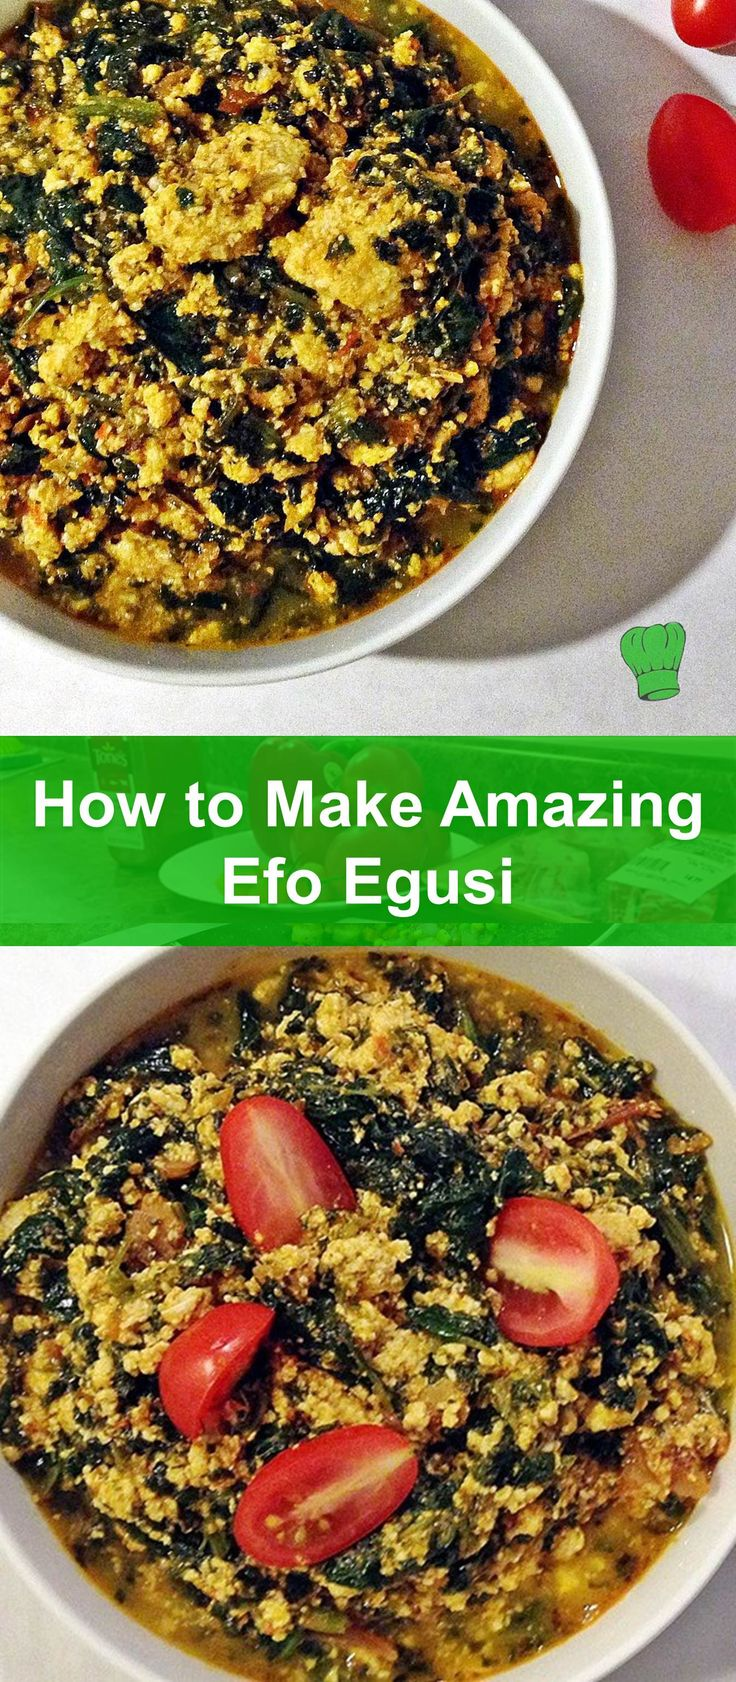 Nigerian vegetable soup with egusi (aka efo egusi) is very easy to make once you get the hang of the quick tips in this recipe :) Best part? no frying needed to make this very healthy